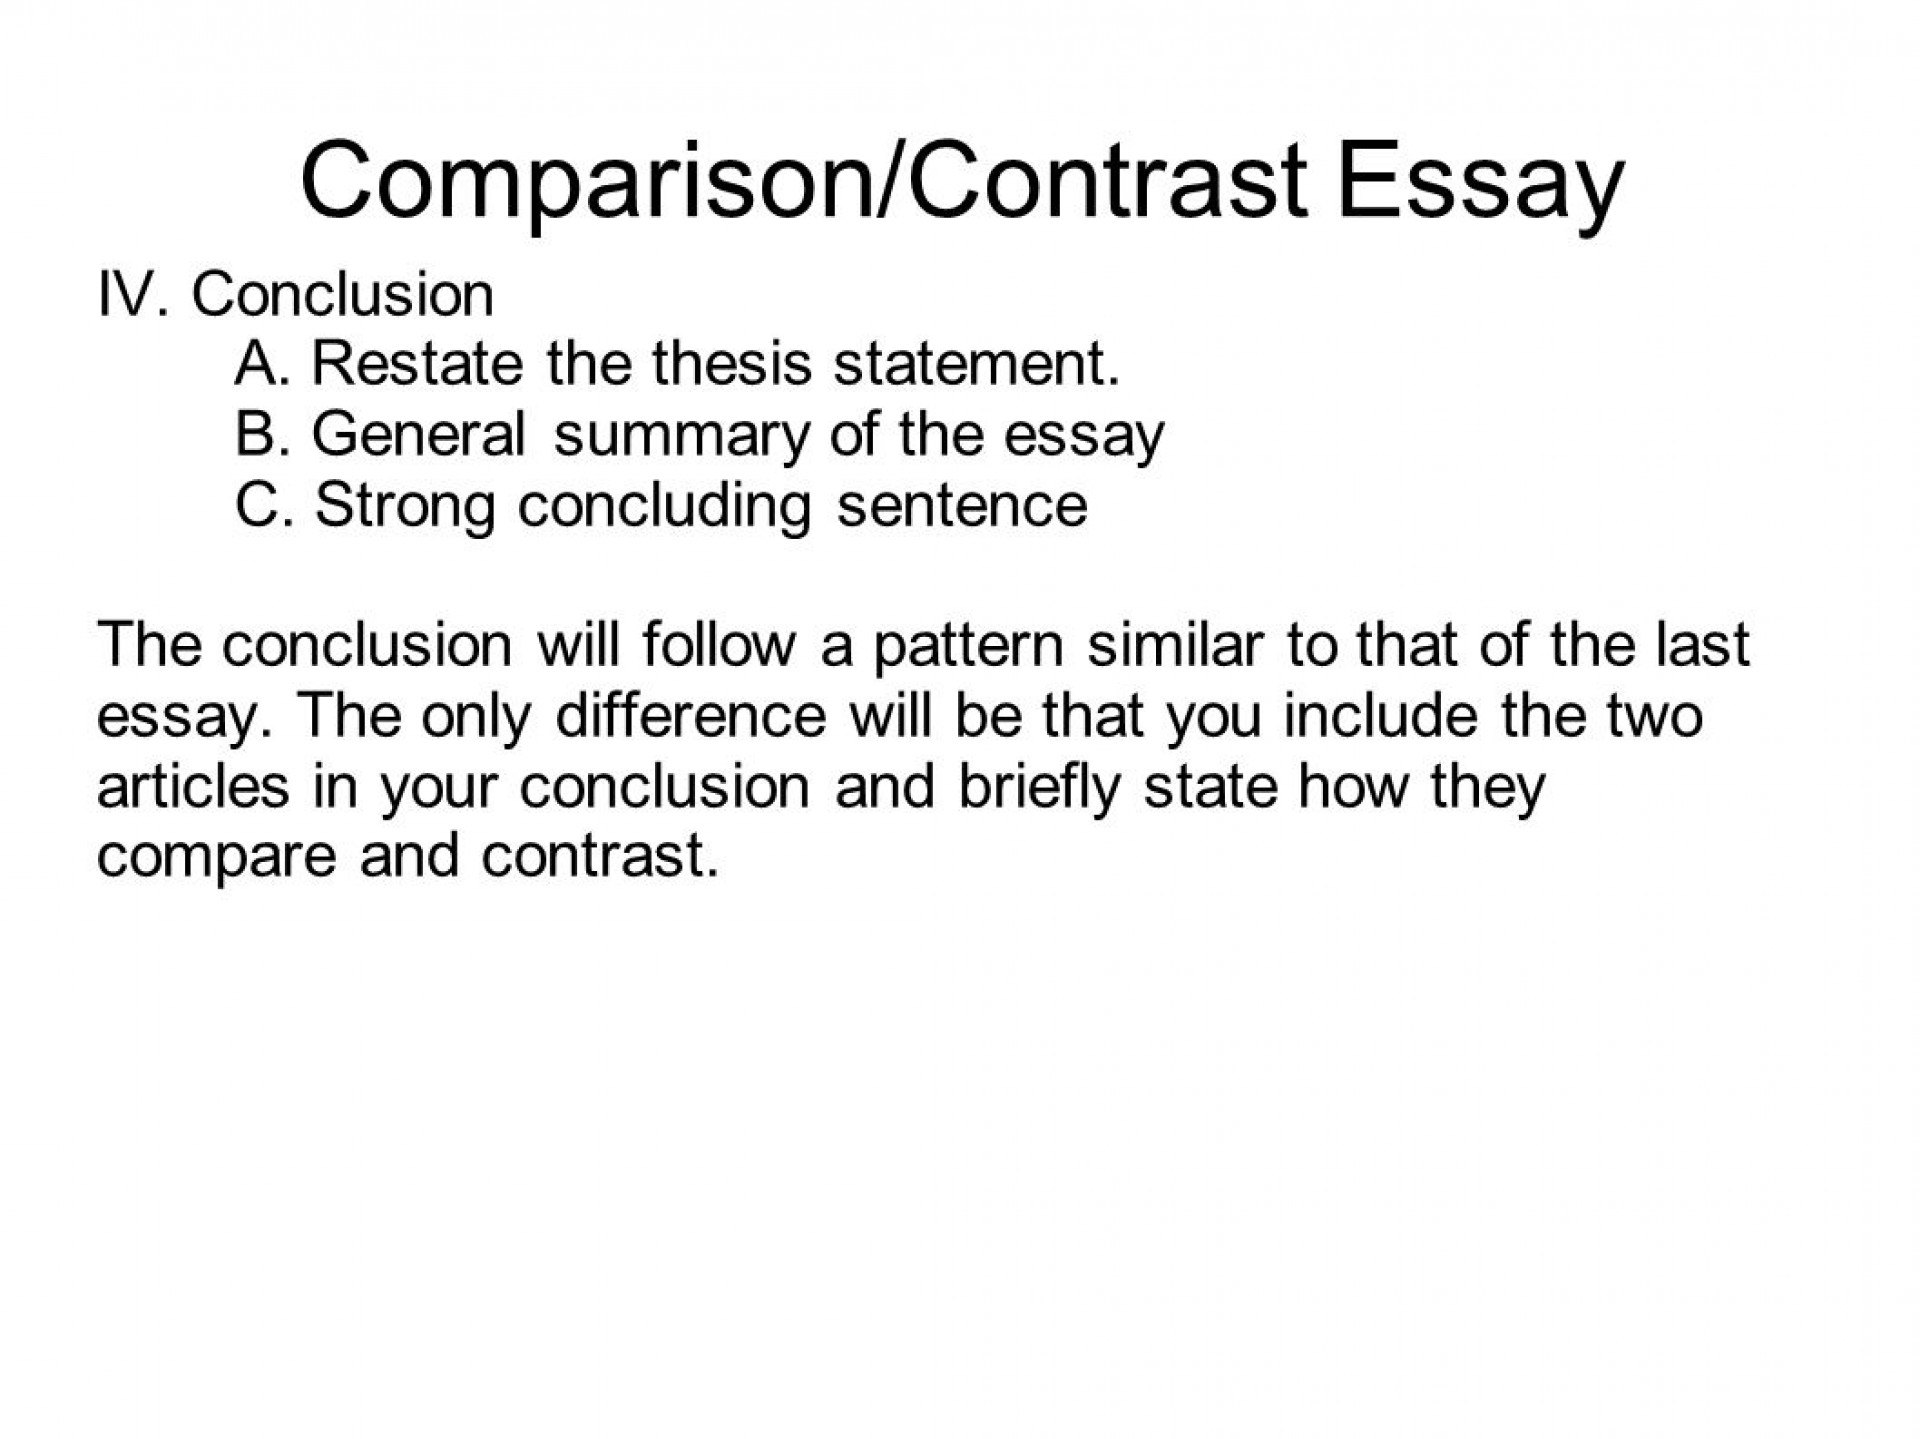 How to Write a Conclusion for a Compare & Contrast Essay | Pen and the Pad